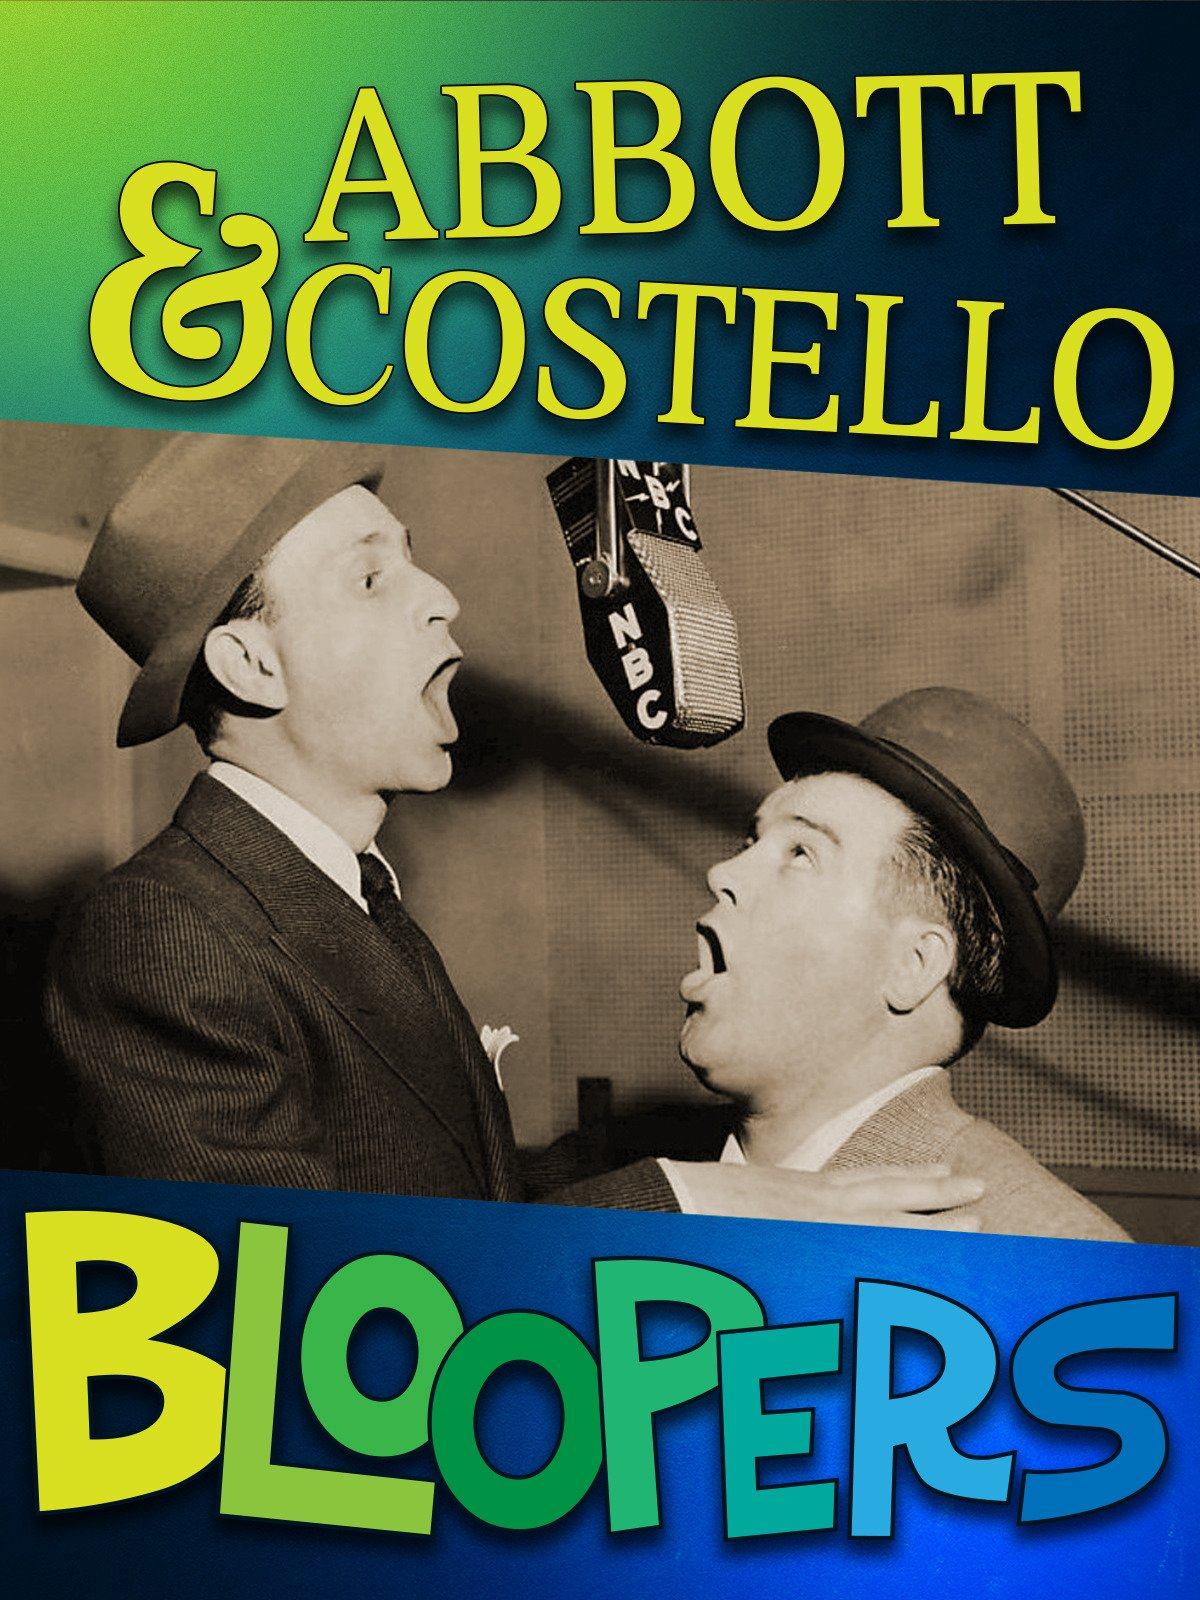 Abbott & Costello Rare Bloopers Uncensored on Amazon Prime Instant Video UK